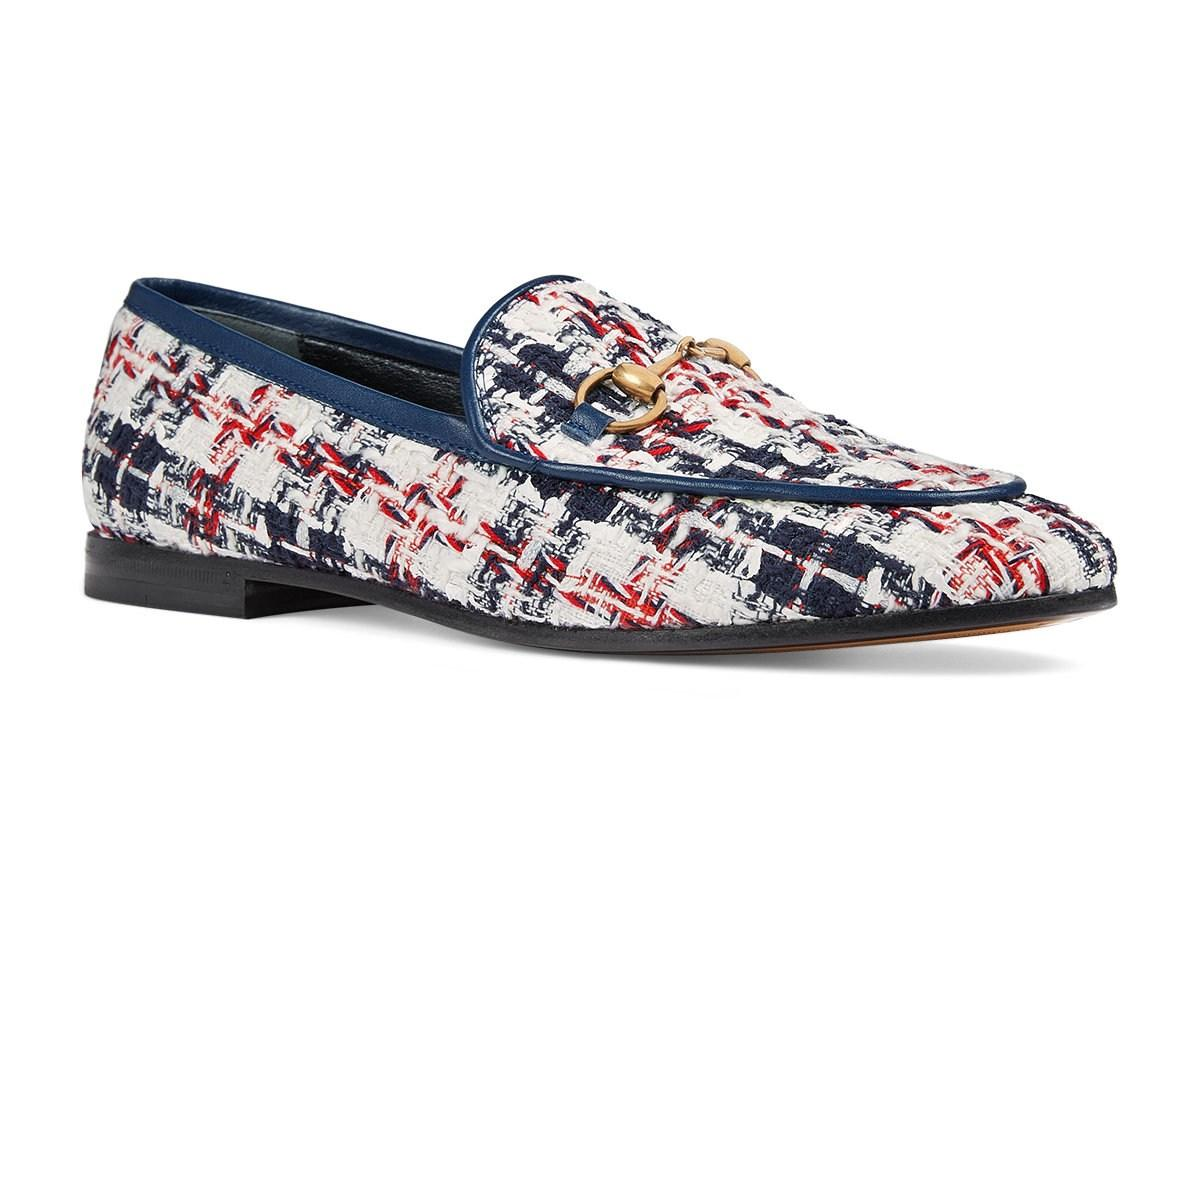 924994538ad Gucci Checked Tweed Loafers in White - Lyst